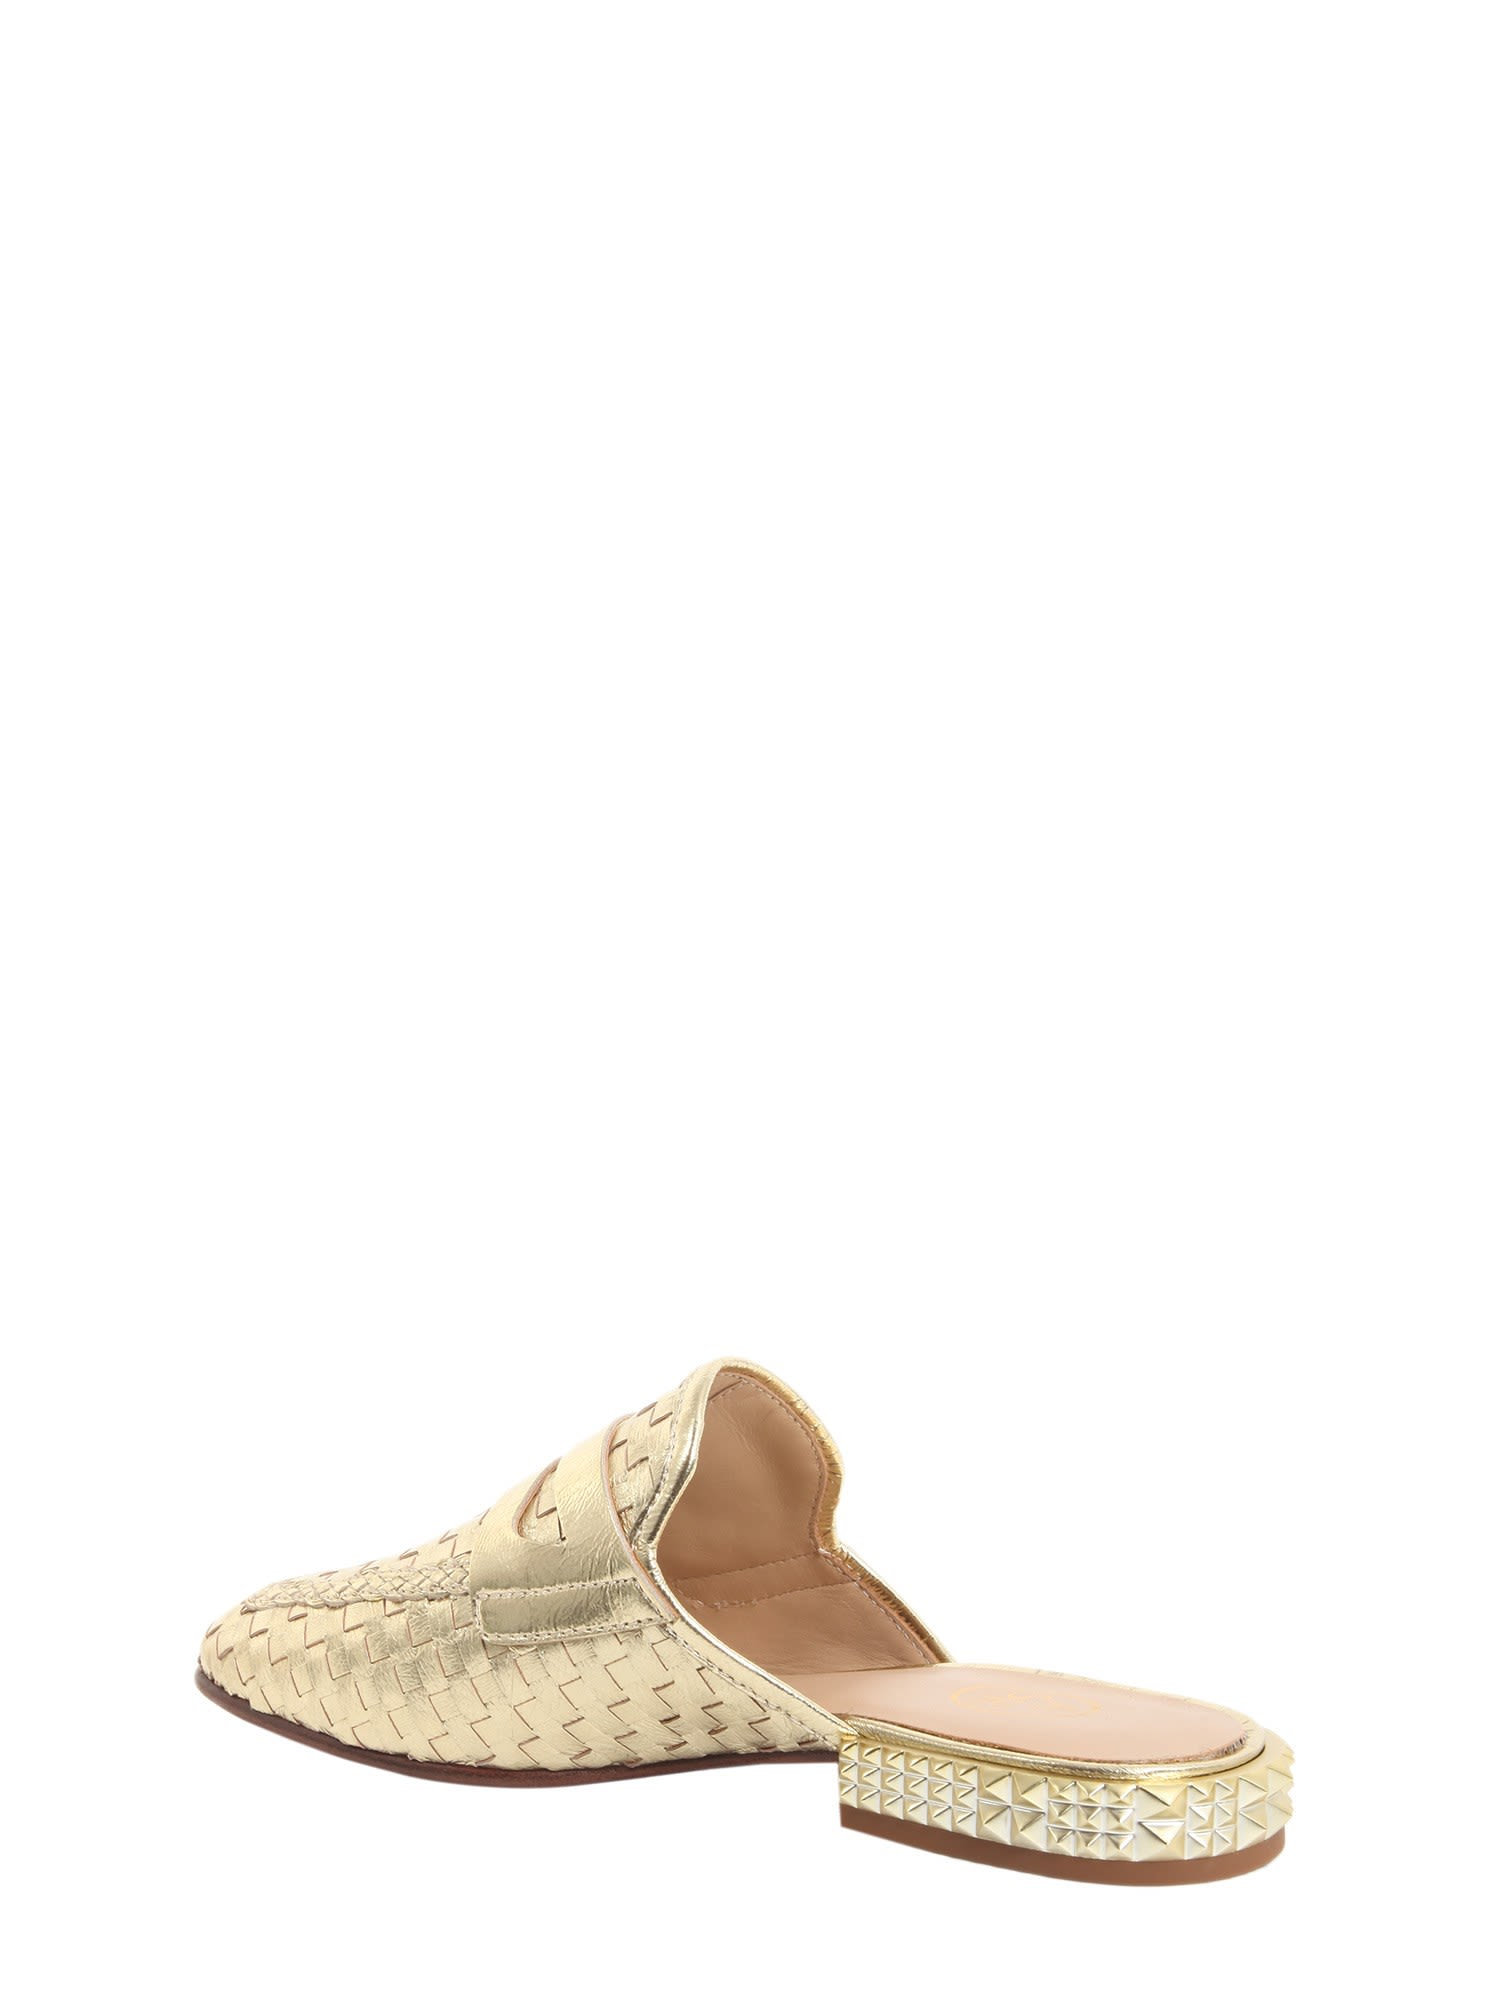 Outlet Extremely Cheap Extremely Ash Eloise sabot loafers hYxH7Hd